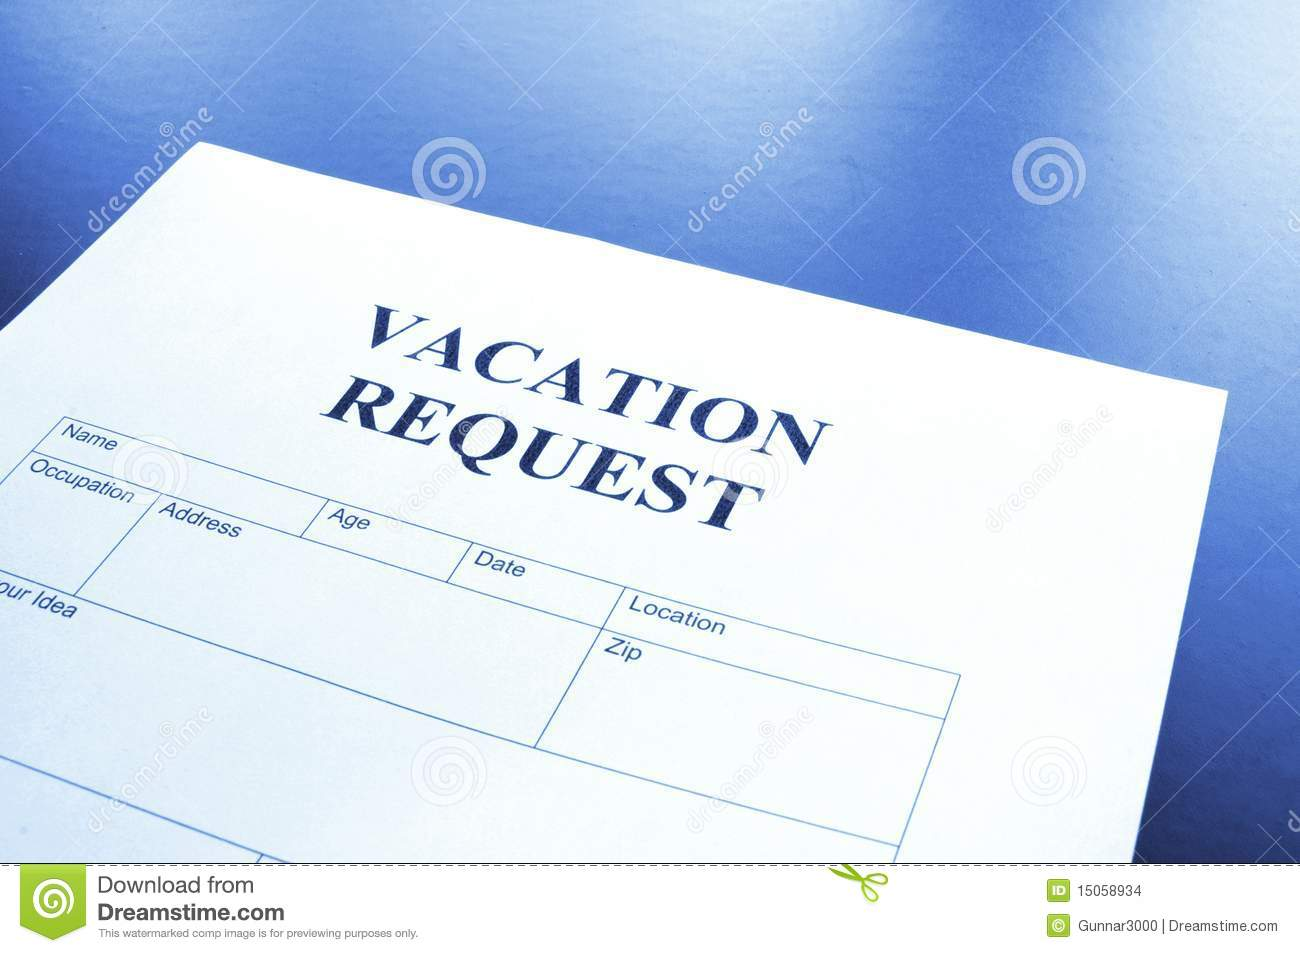 request for time off form